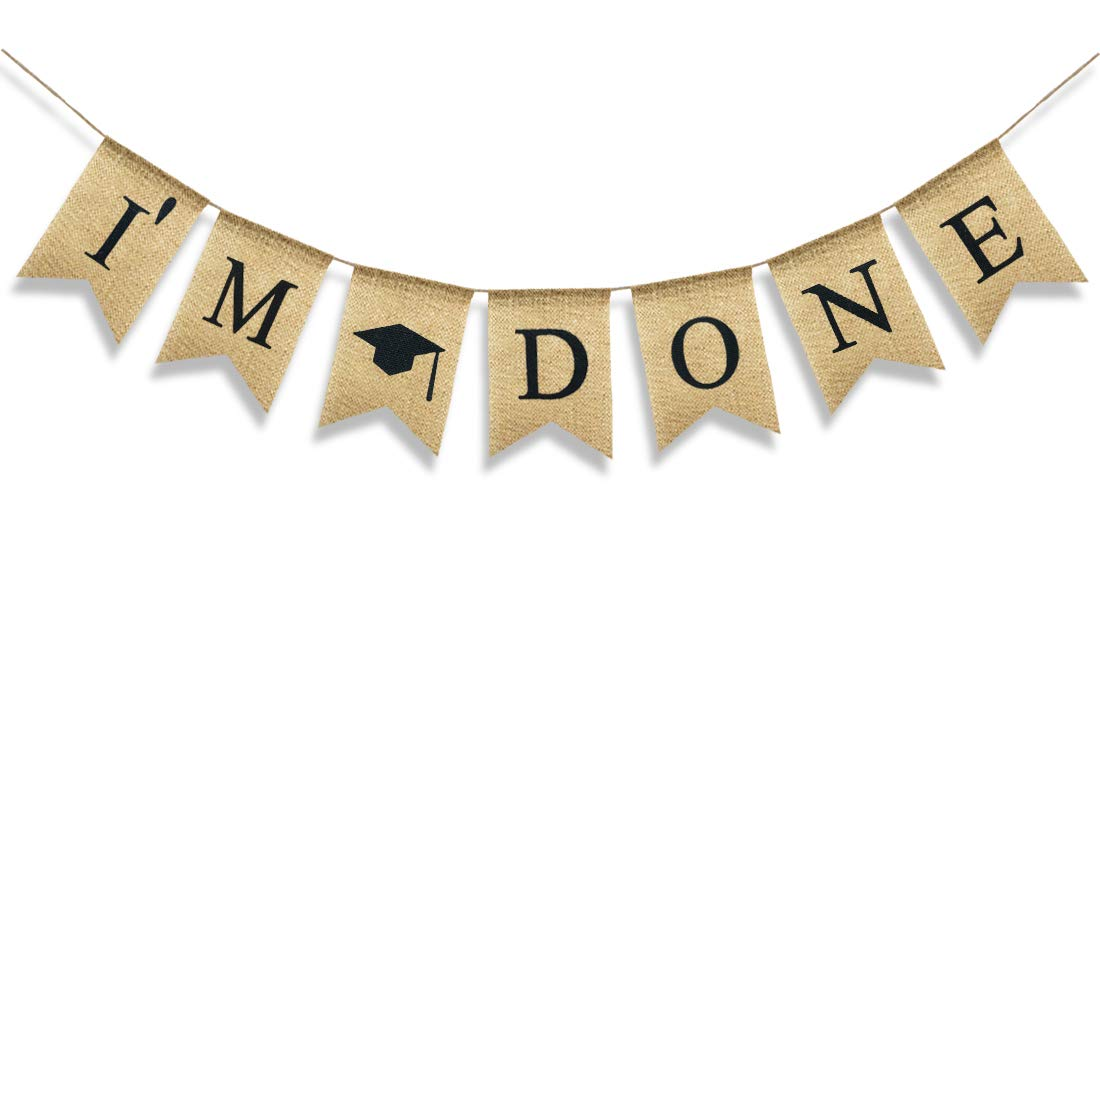 Uniwish I'm Done Banner Graduation Party Supplies 2019 Congrats Grad Party Decor for College Senior High School Garland Photo Props